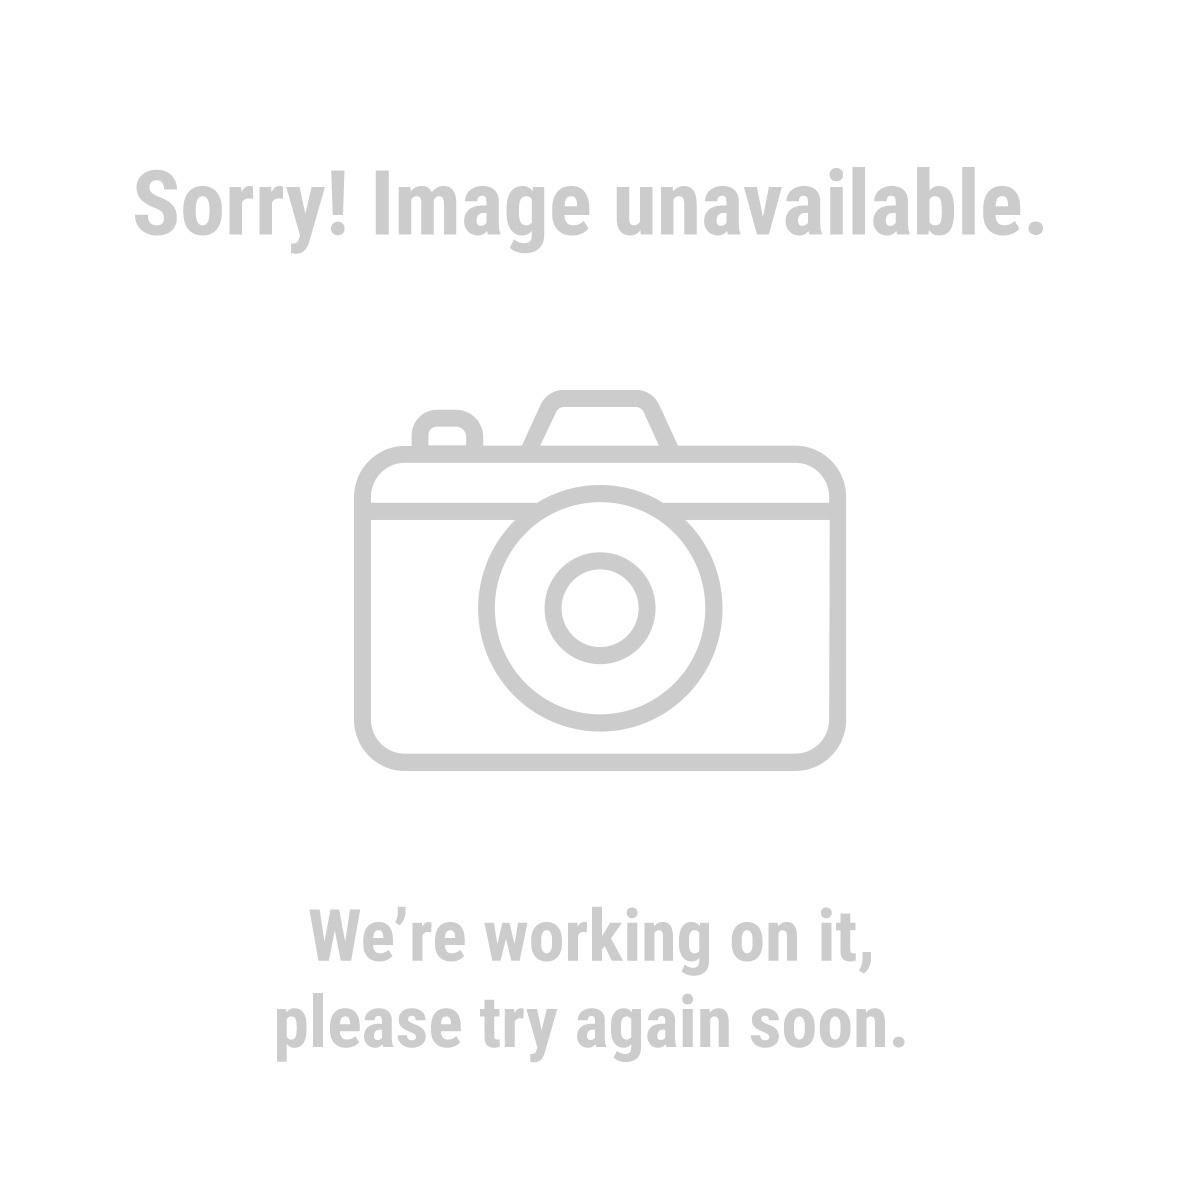 Greenwood® 63337 5/8 in. x 100 ft. Heavy Duty Garden Hose